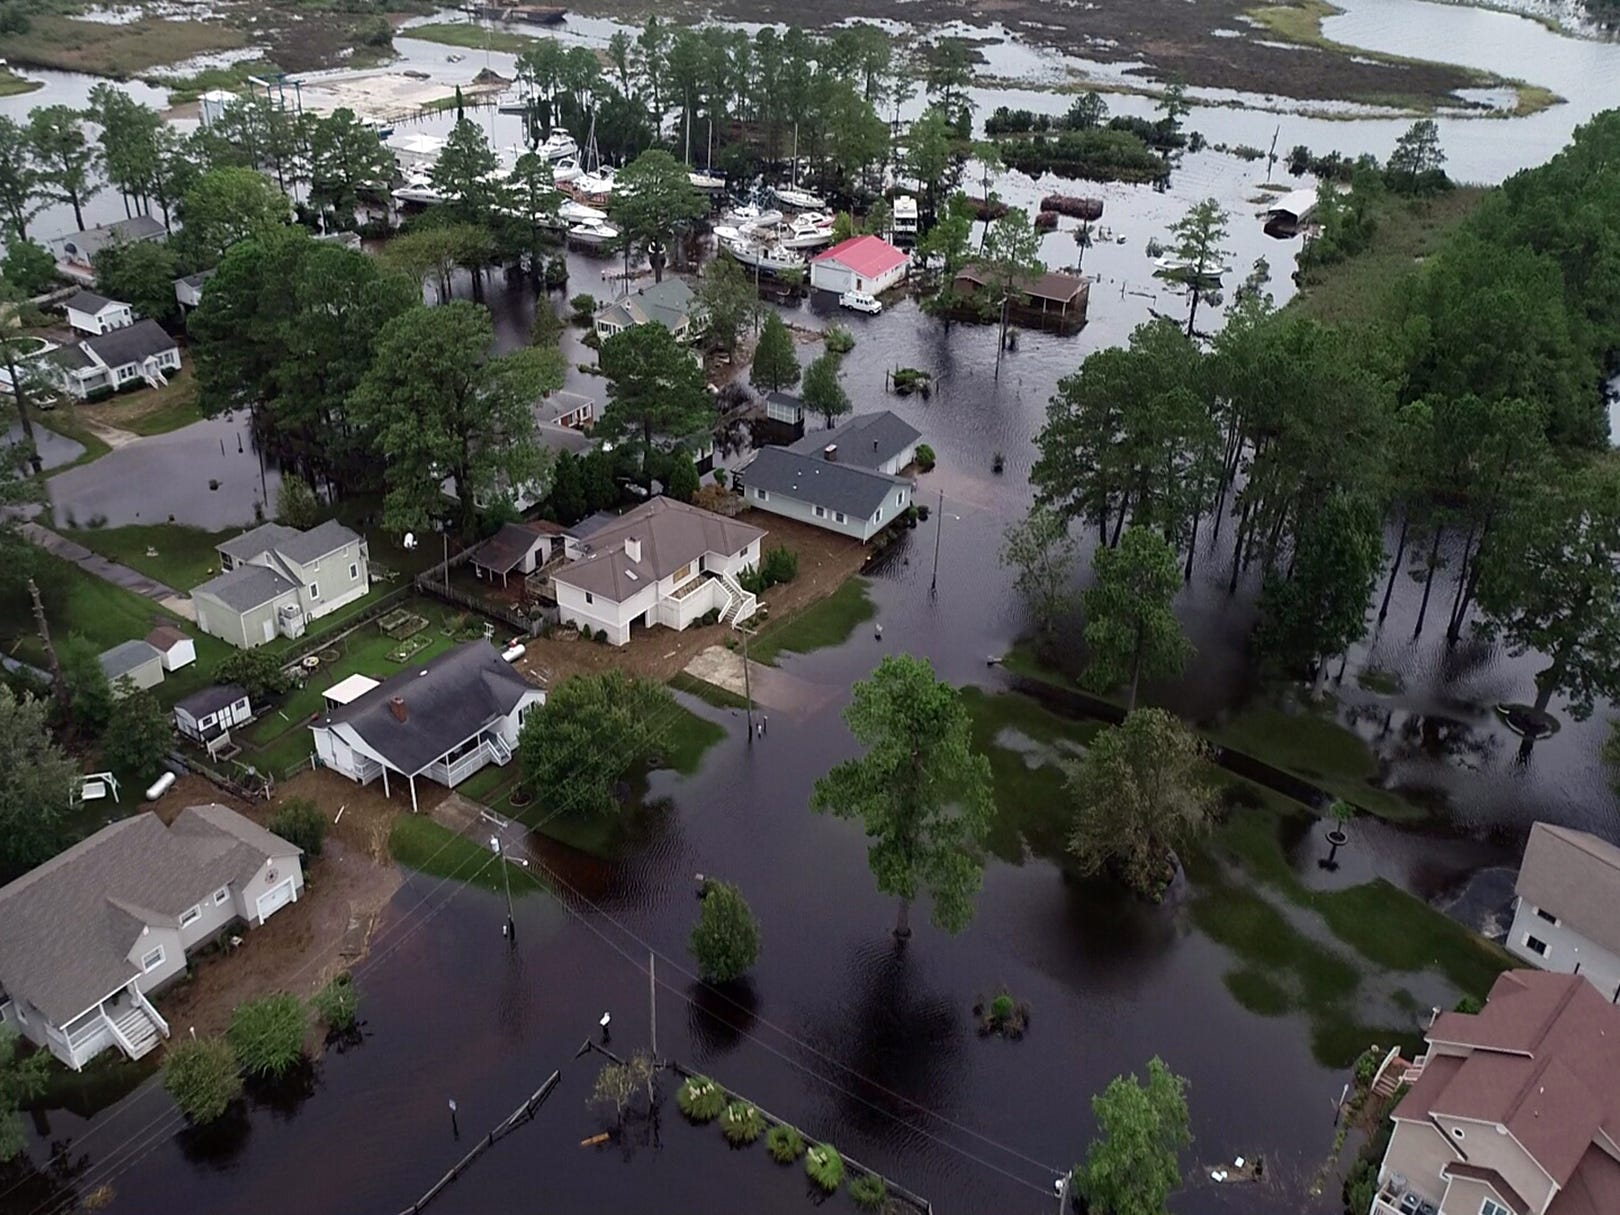 Flooded streets in Belhaven, N.C. on Sept. 15, 2018.